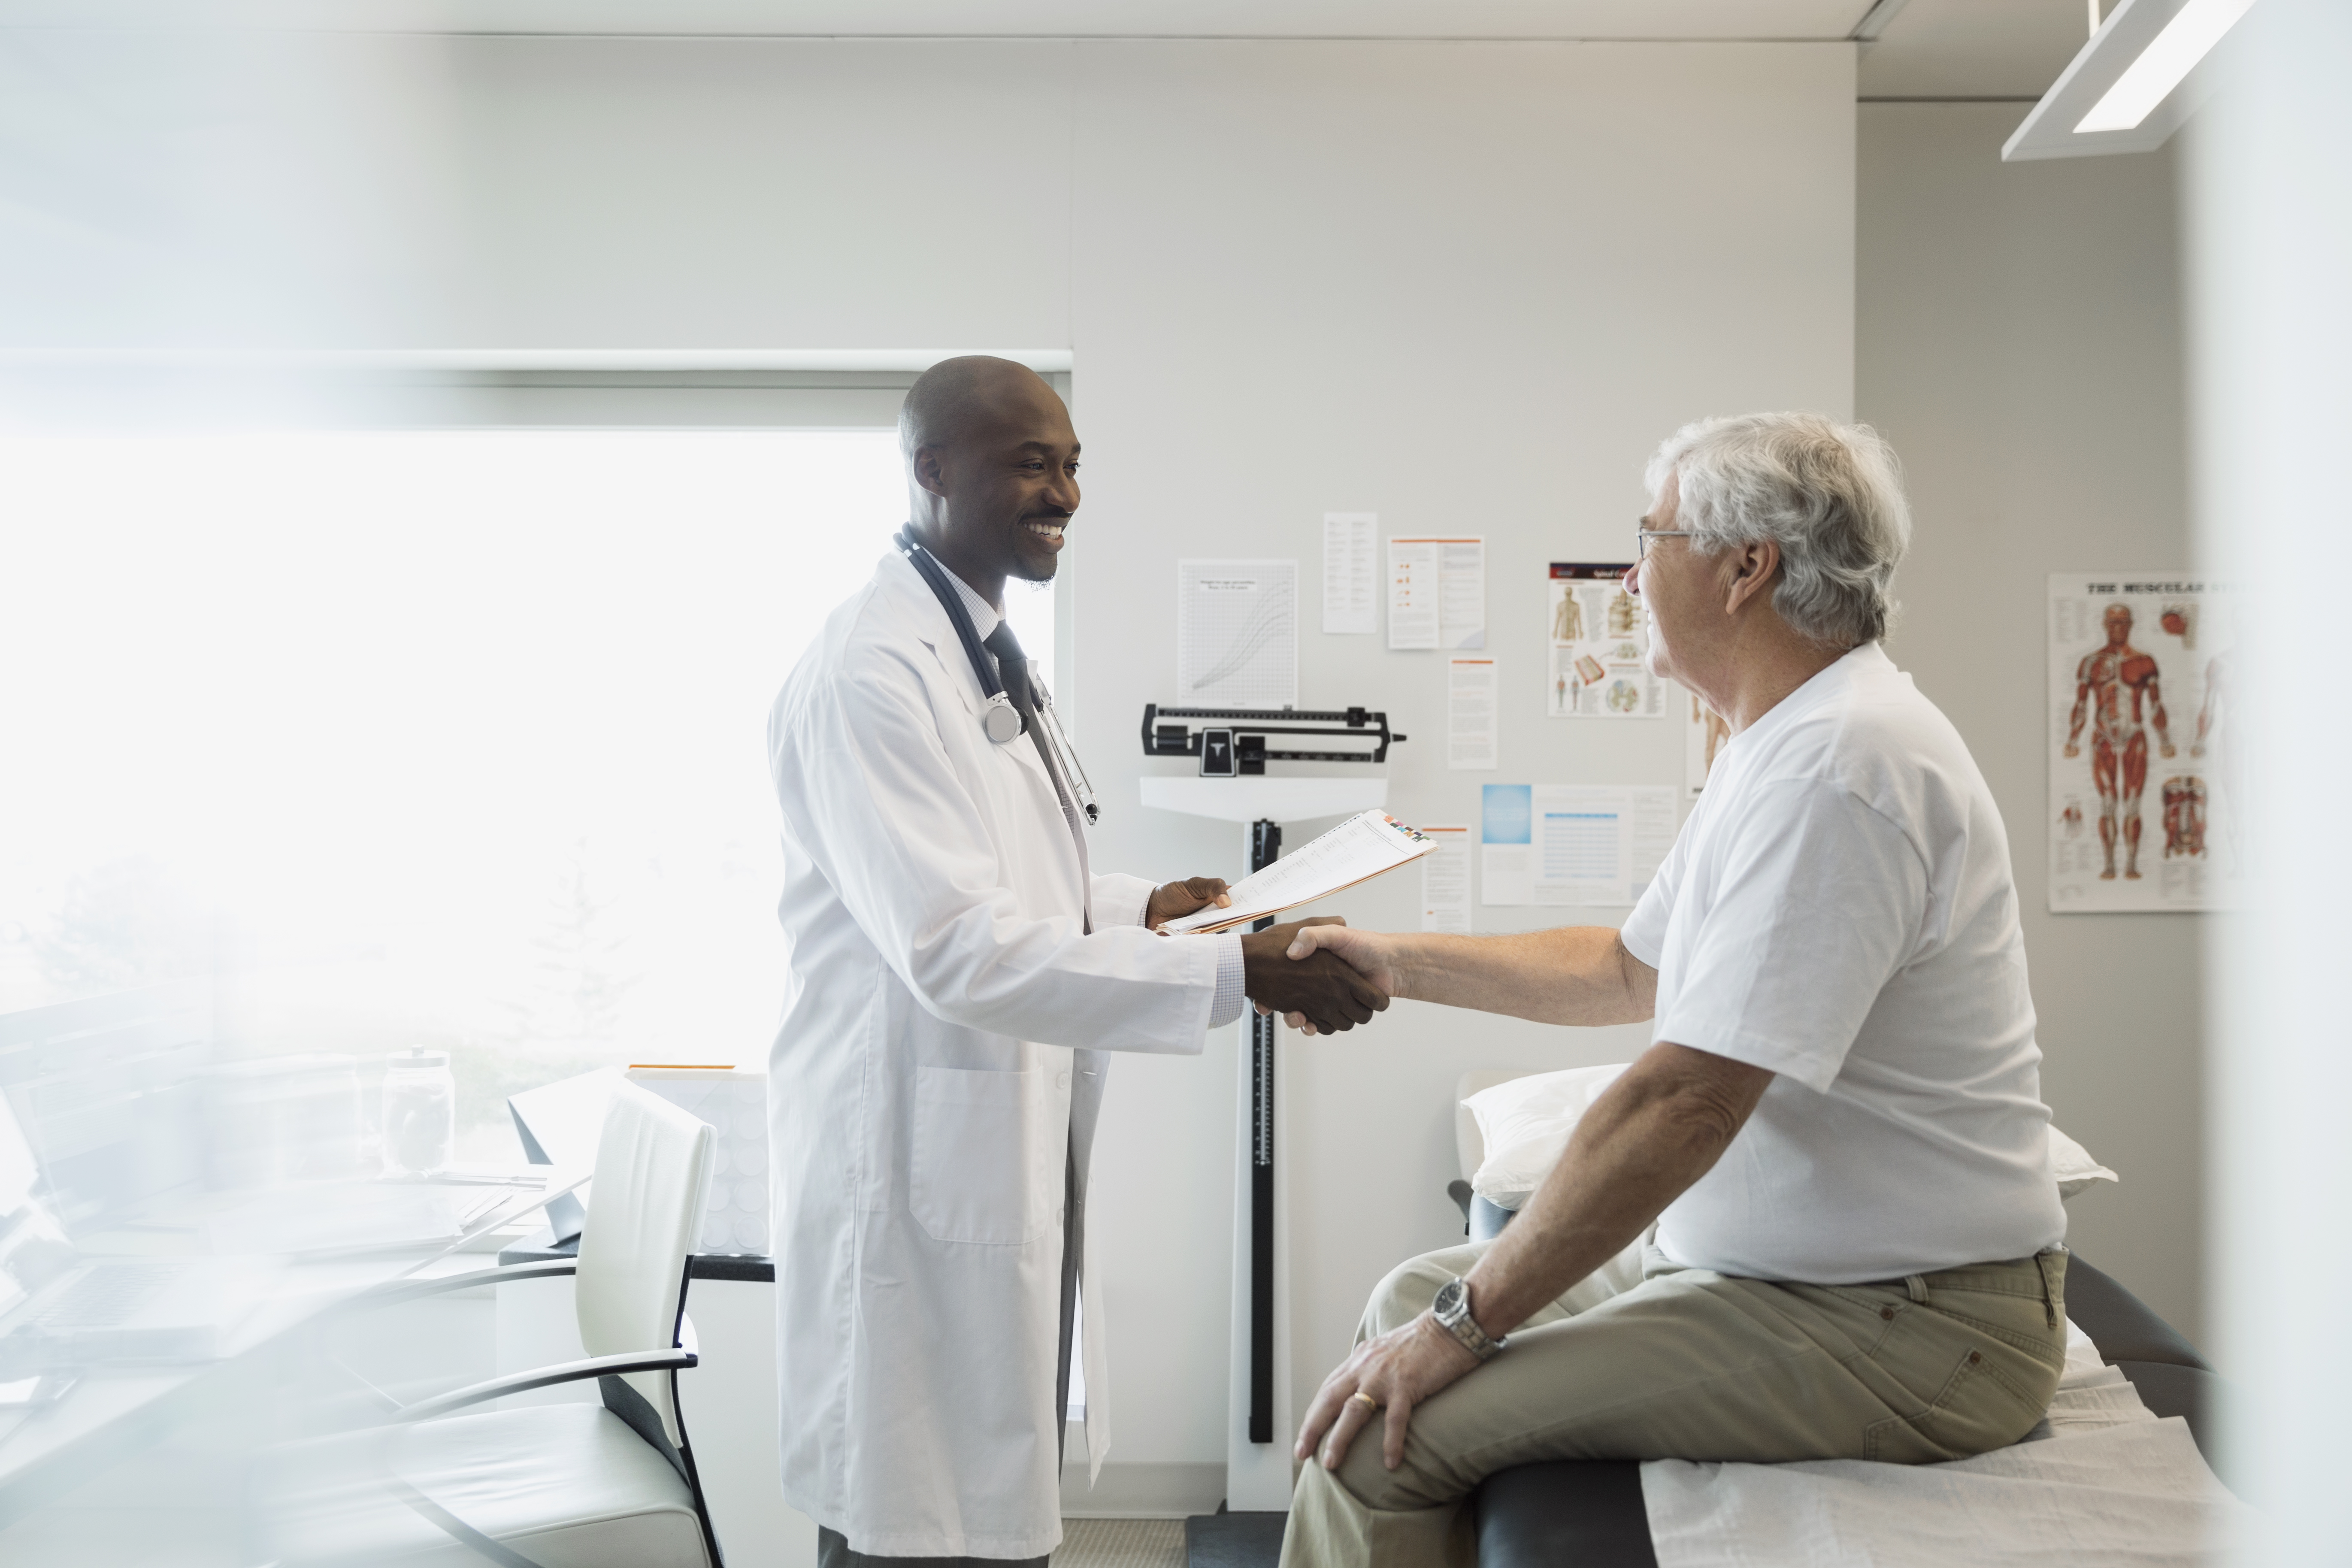 African-American men make up just 2.8 percent of the applicants to medical school.